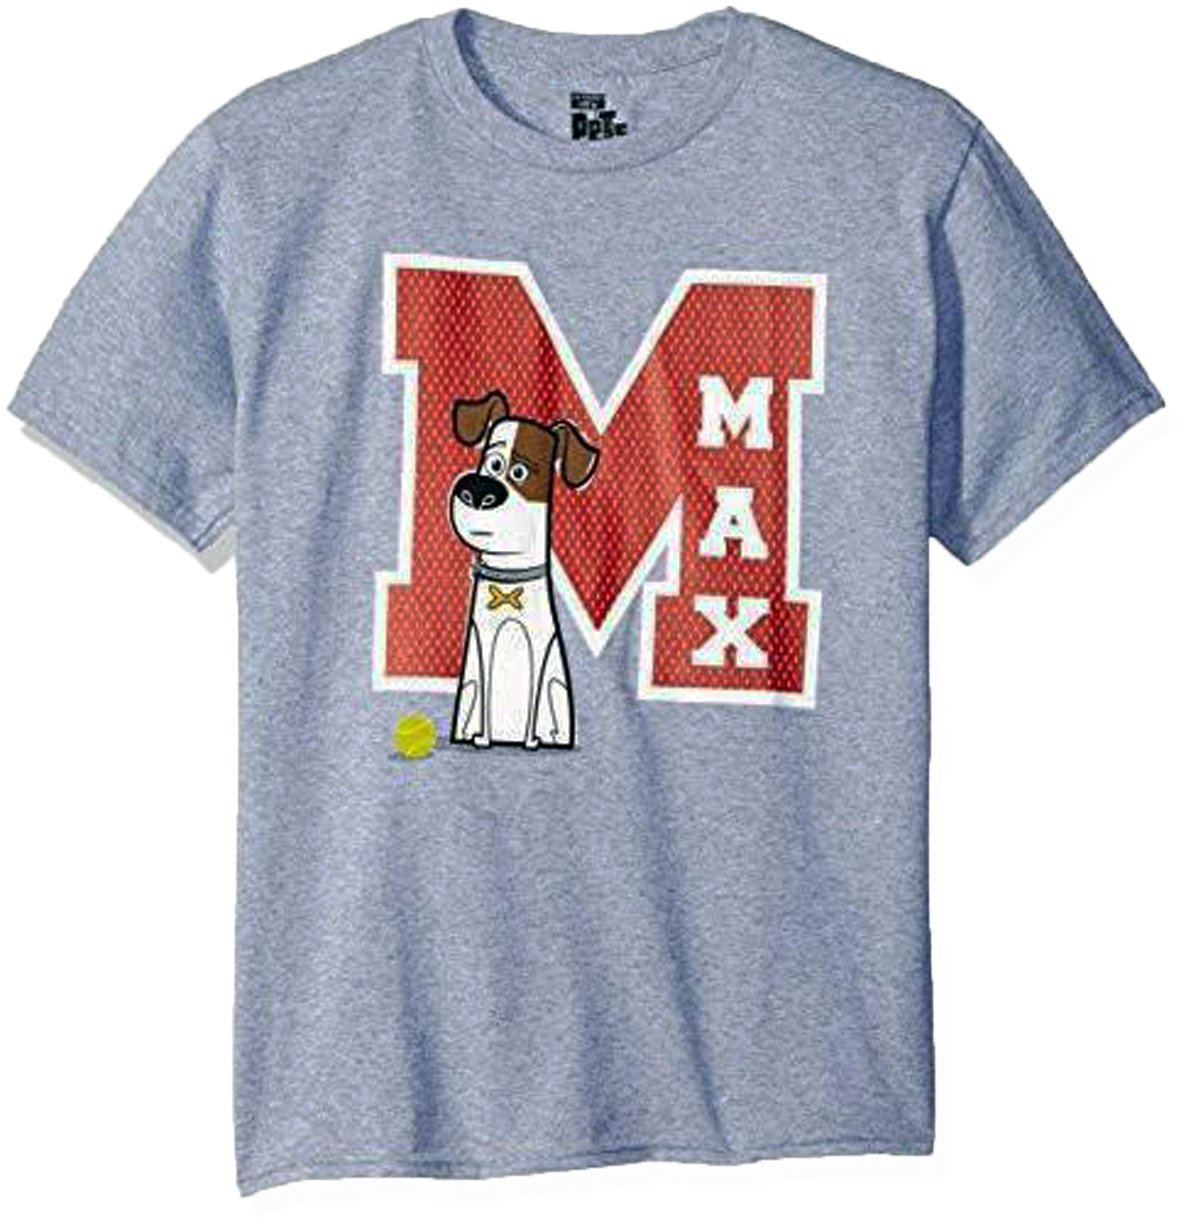 Size L - The Secret Life of Pets Max Youth's T-Shirt